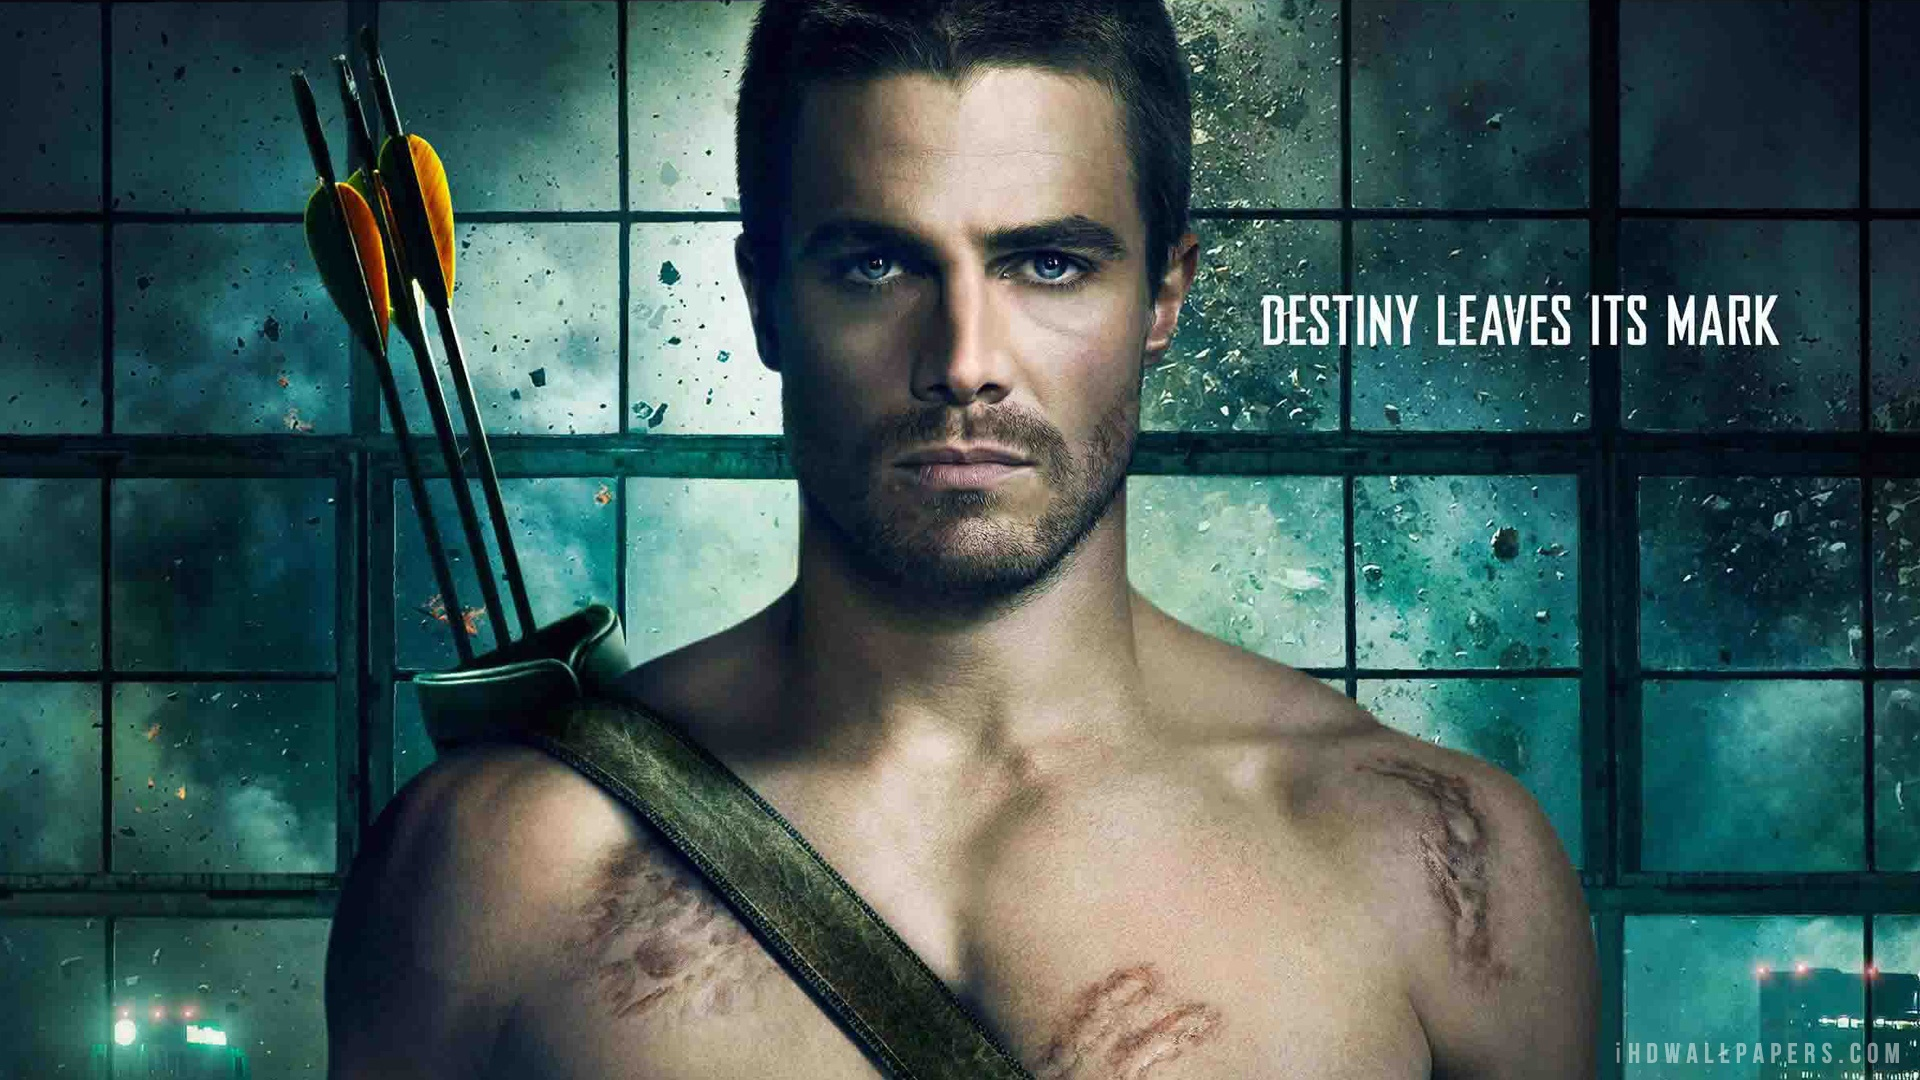 Arrow Season 4 HD Tv Shows 4k Wallpapers Images Backgrounds